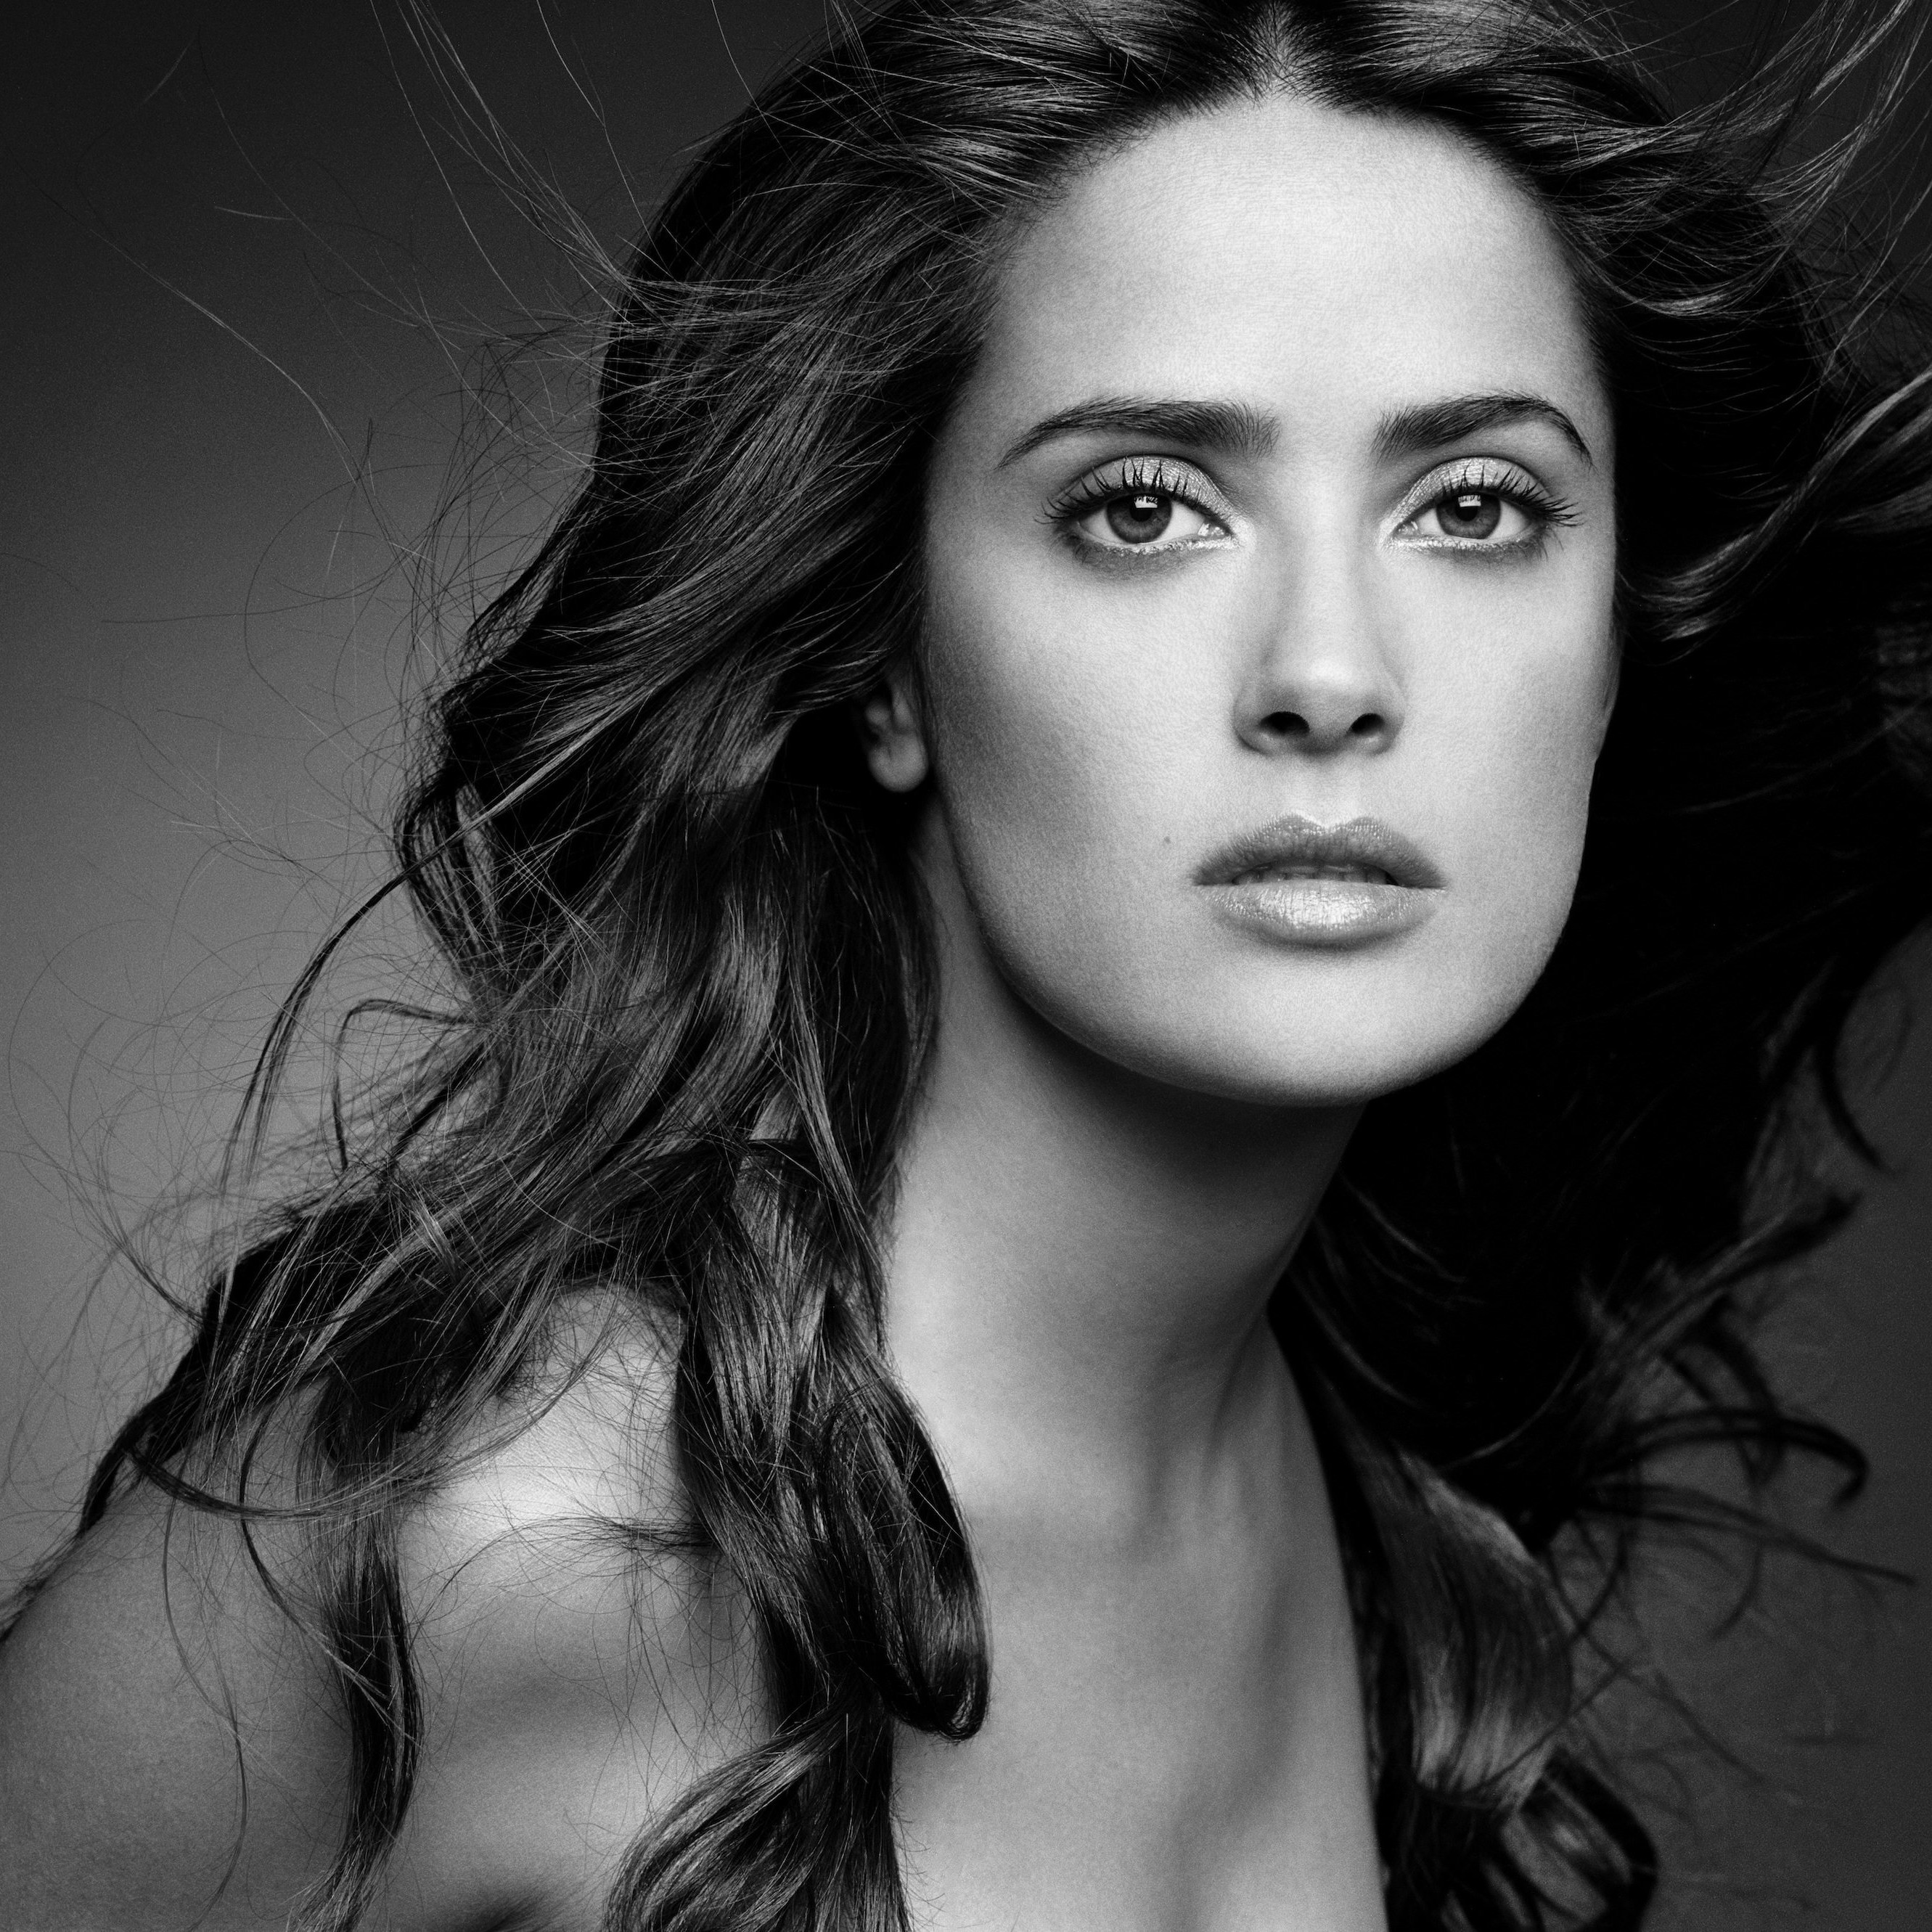 Salma Hayek Black & White Portrait Wallpaper for Apple iPhone 6 Plus